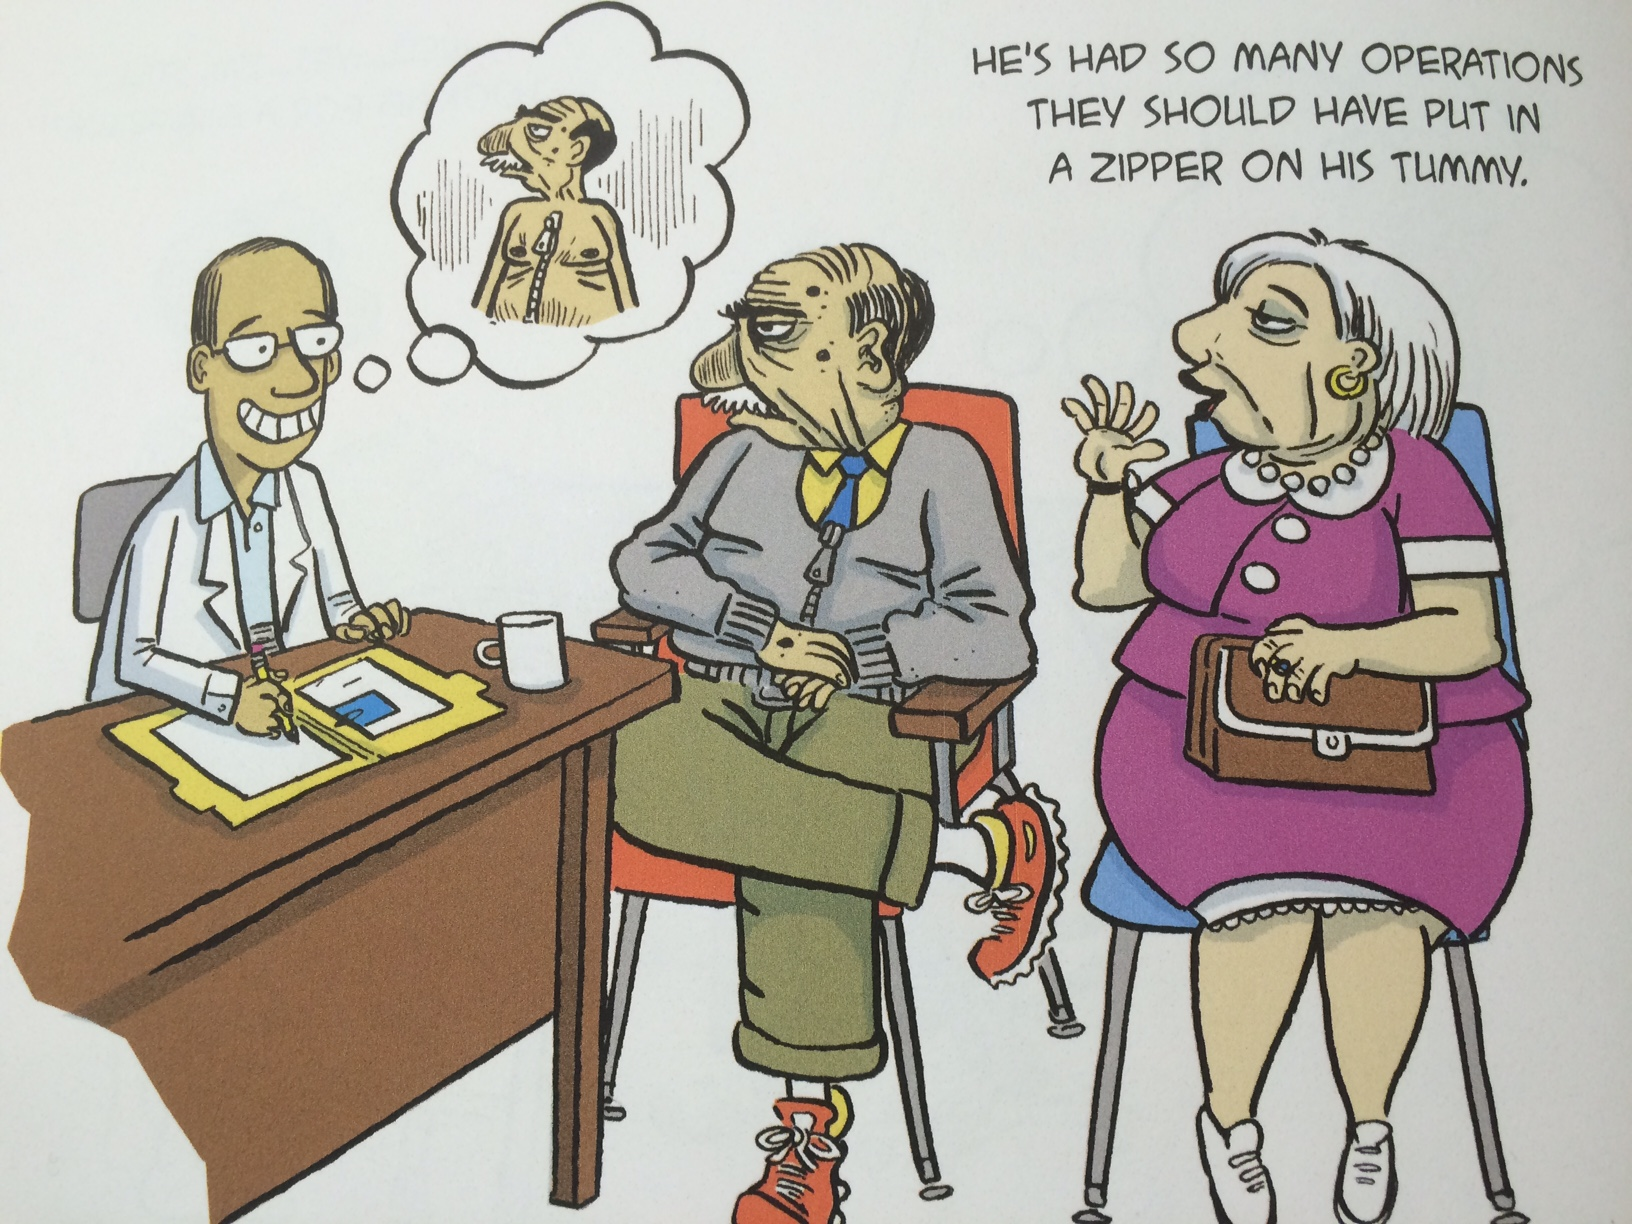 An illustration of an elderly couple sitting in a doctor's office. The woman is saying 'He's had so many operations they should have put a zipper on his tummy.' A thought bubble above the doctor's head shows the man with a zipper on his chest.